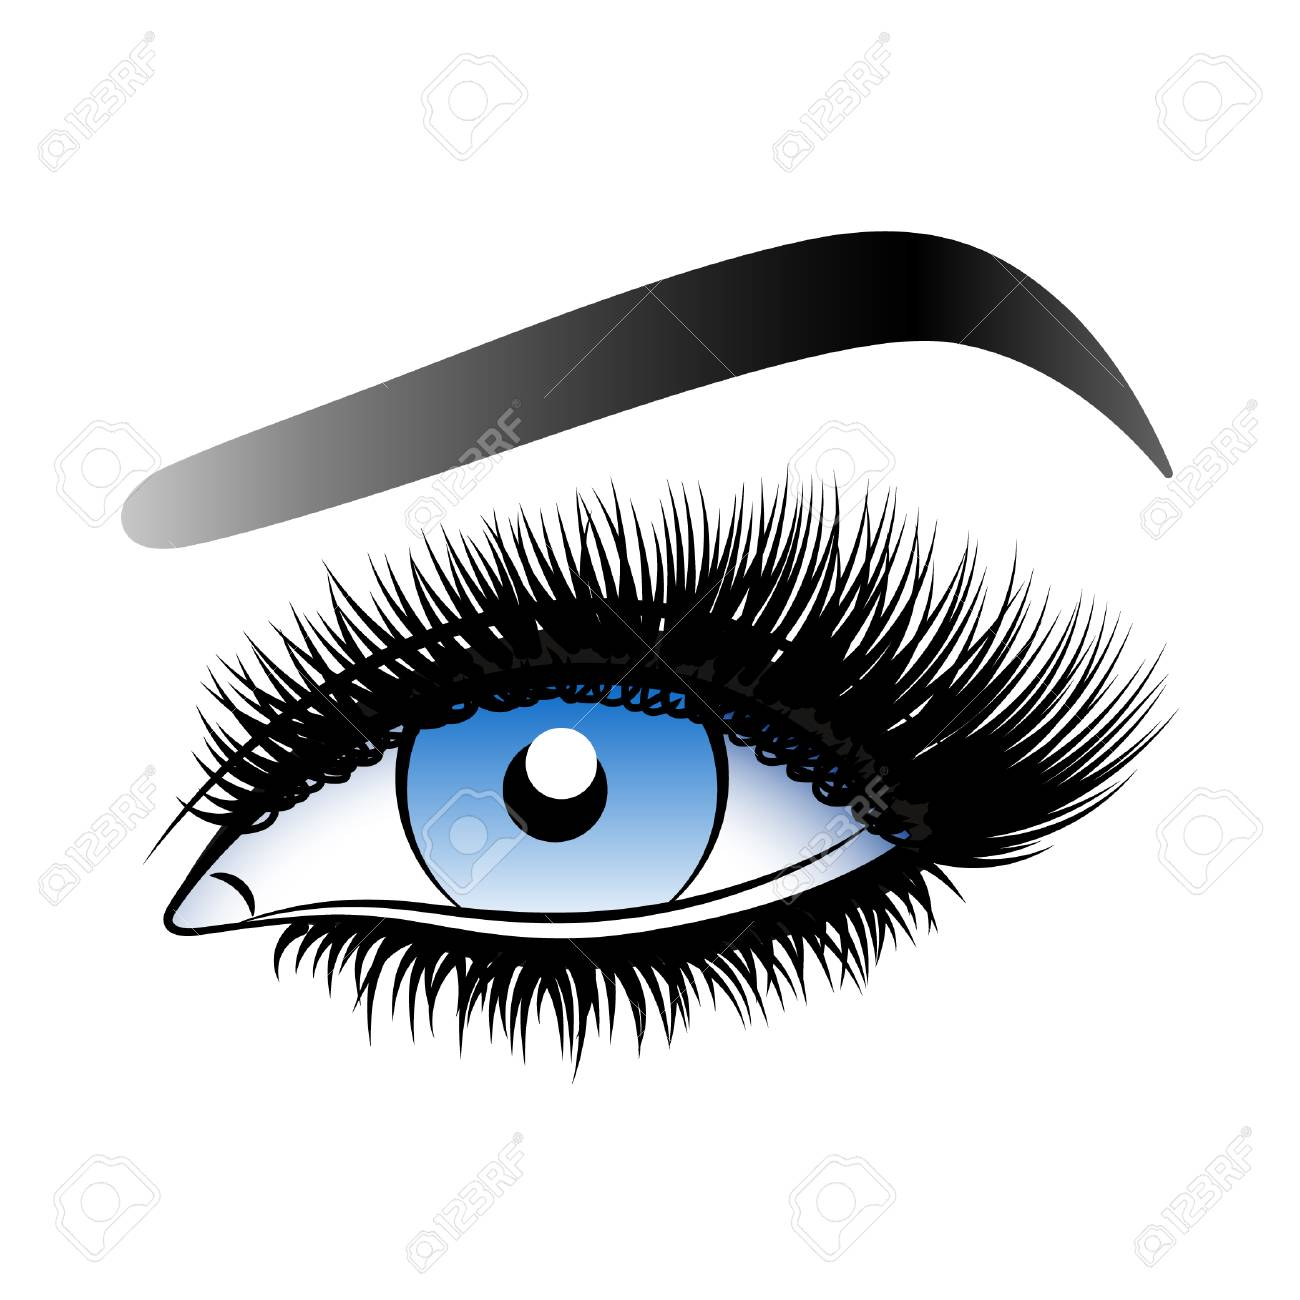 Vector illustration isolated on white background ink drawing eye makeup stock vector